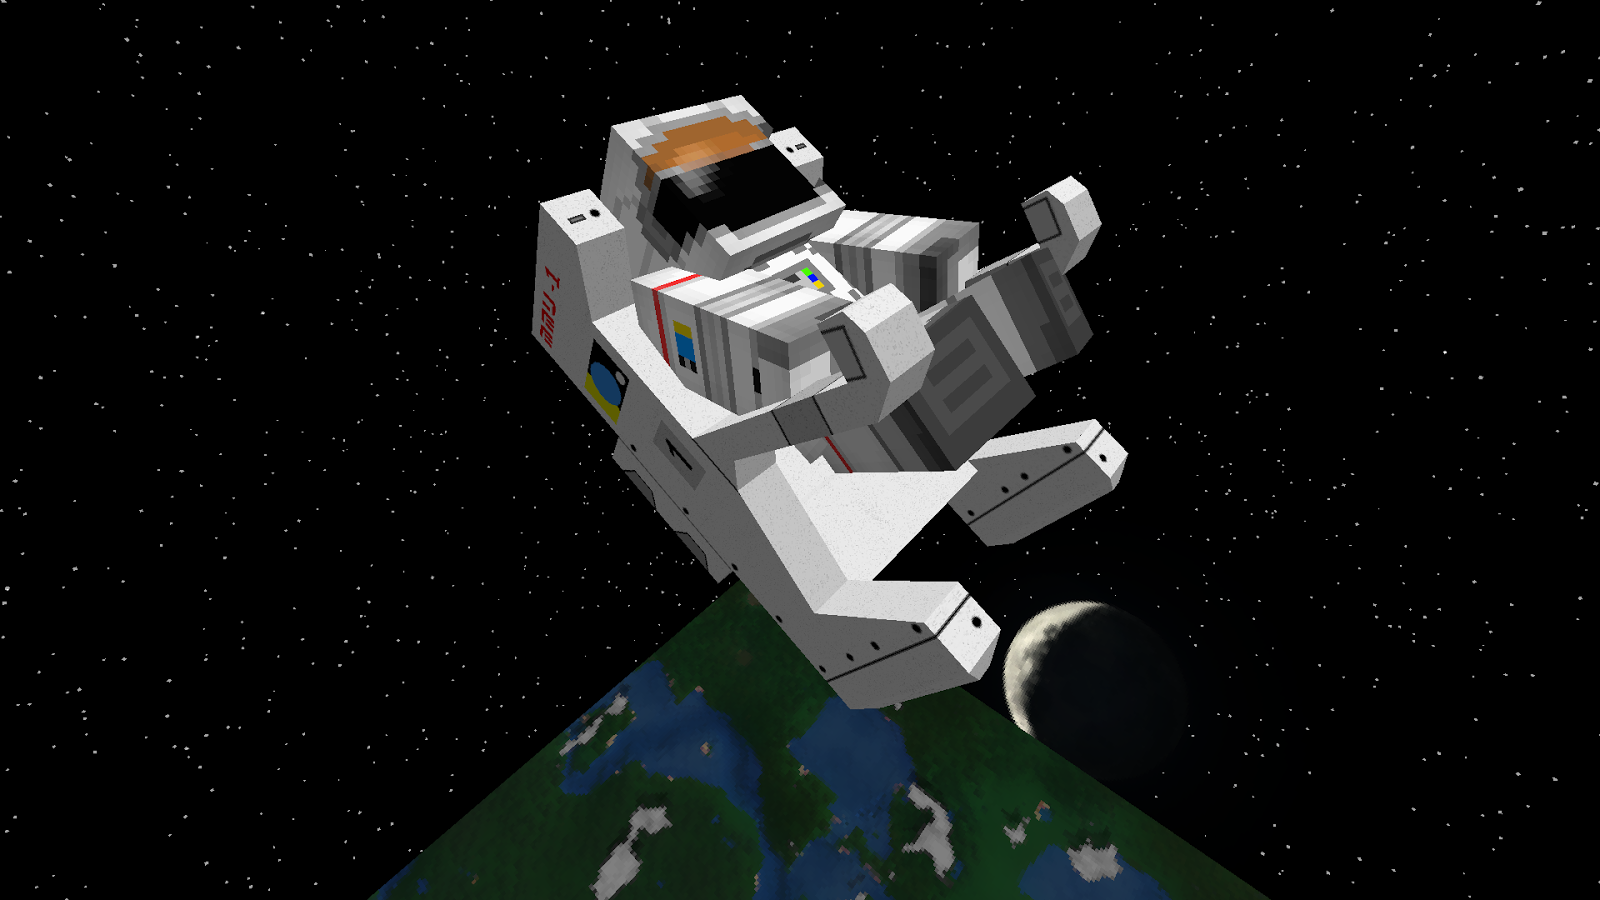 Galacticraft space station house